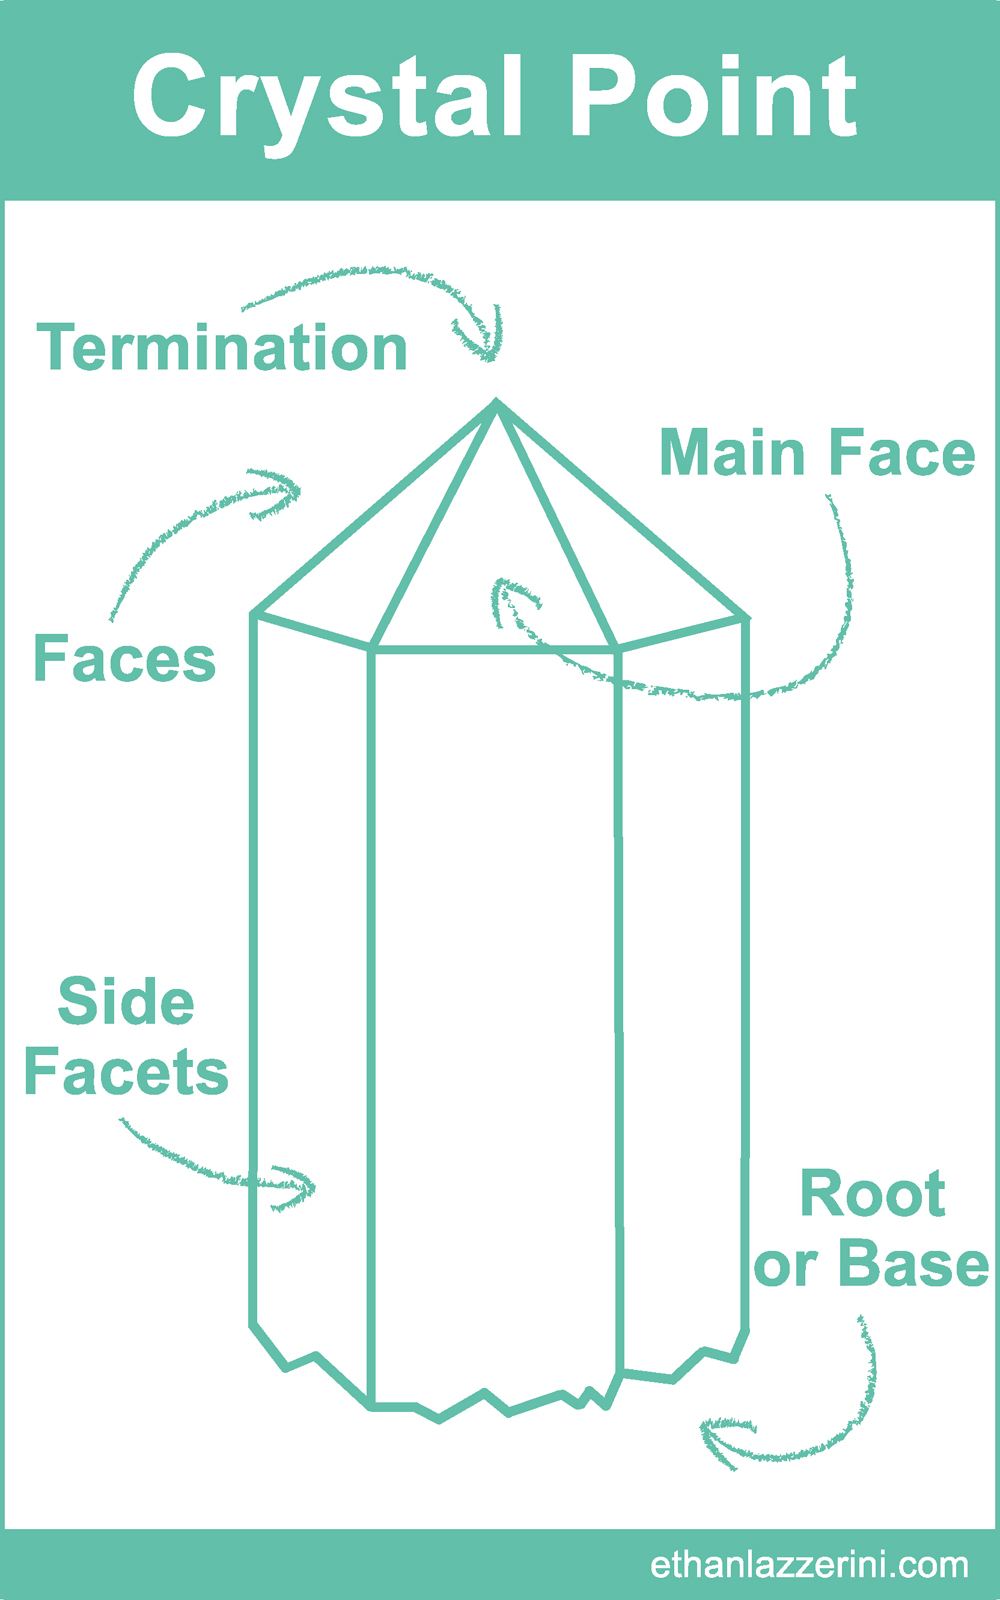 Crystal point terminology